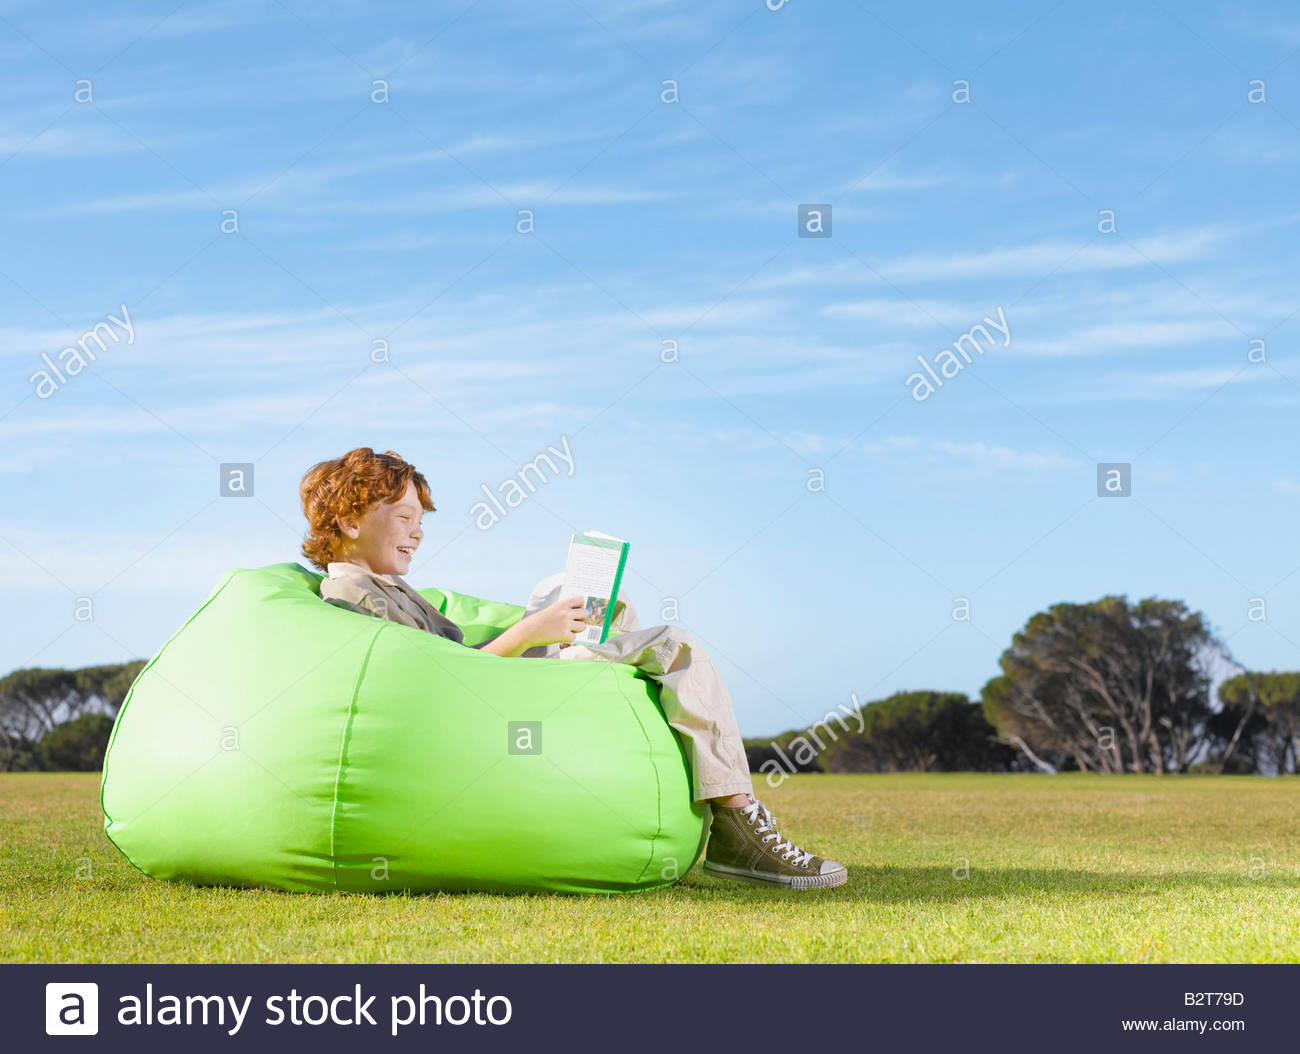 Young boy in bean bag reading outdoors - Stock Image